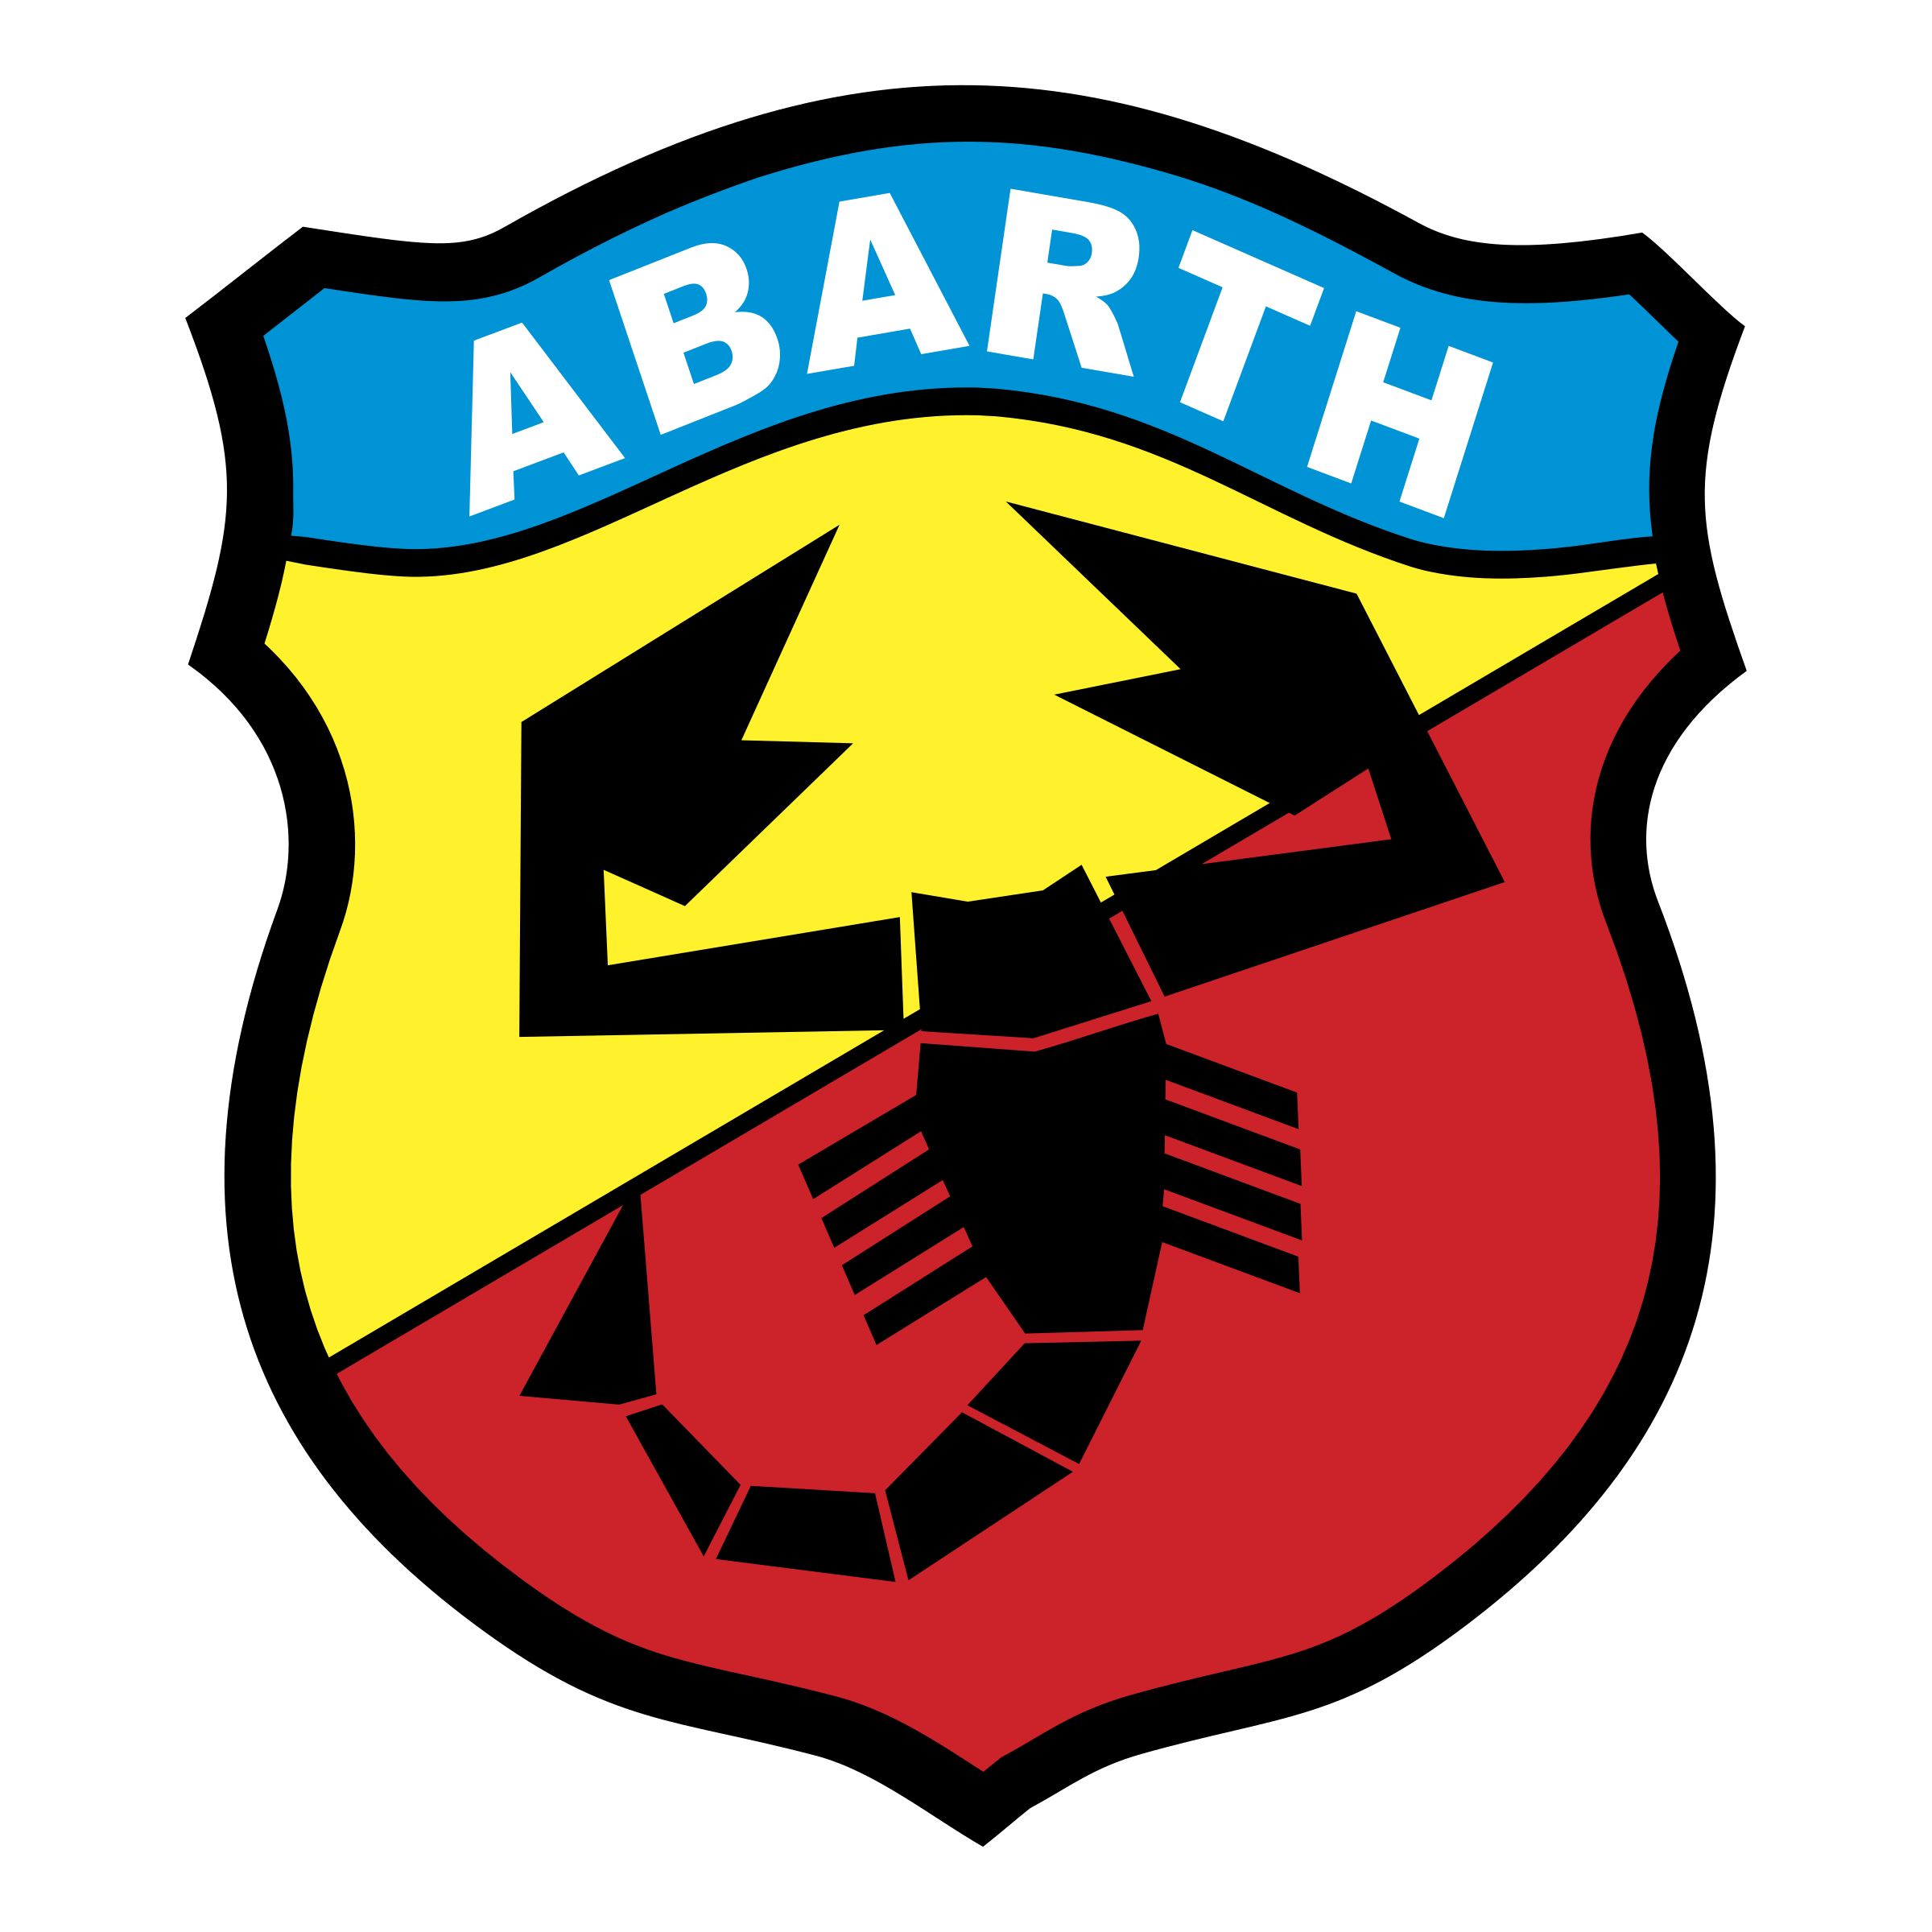 Abarth Logo - Abarth Logo PNG Transparent & SVG Vector - Freebie Supply